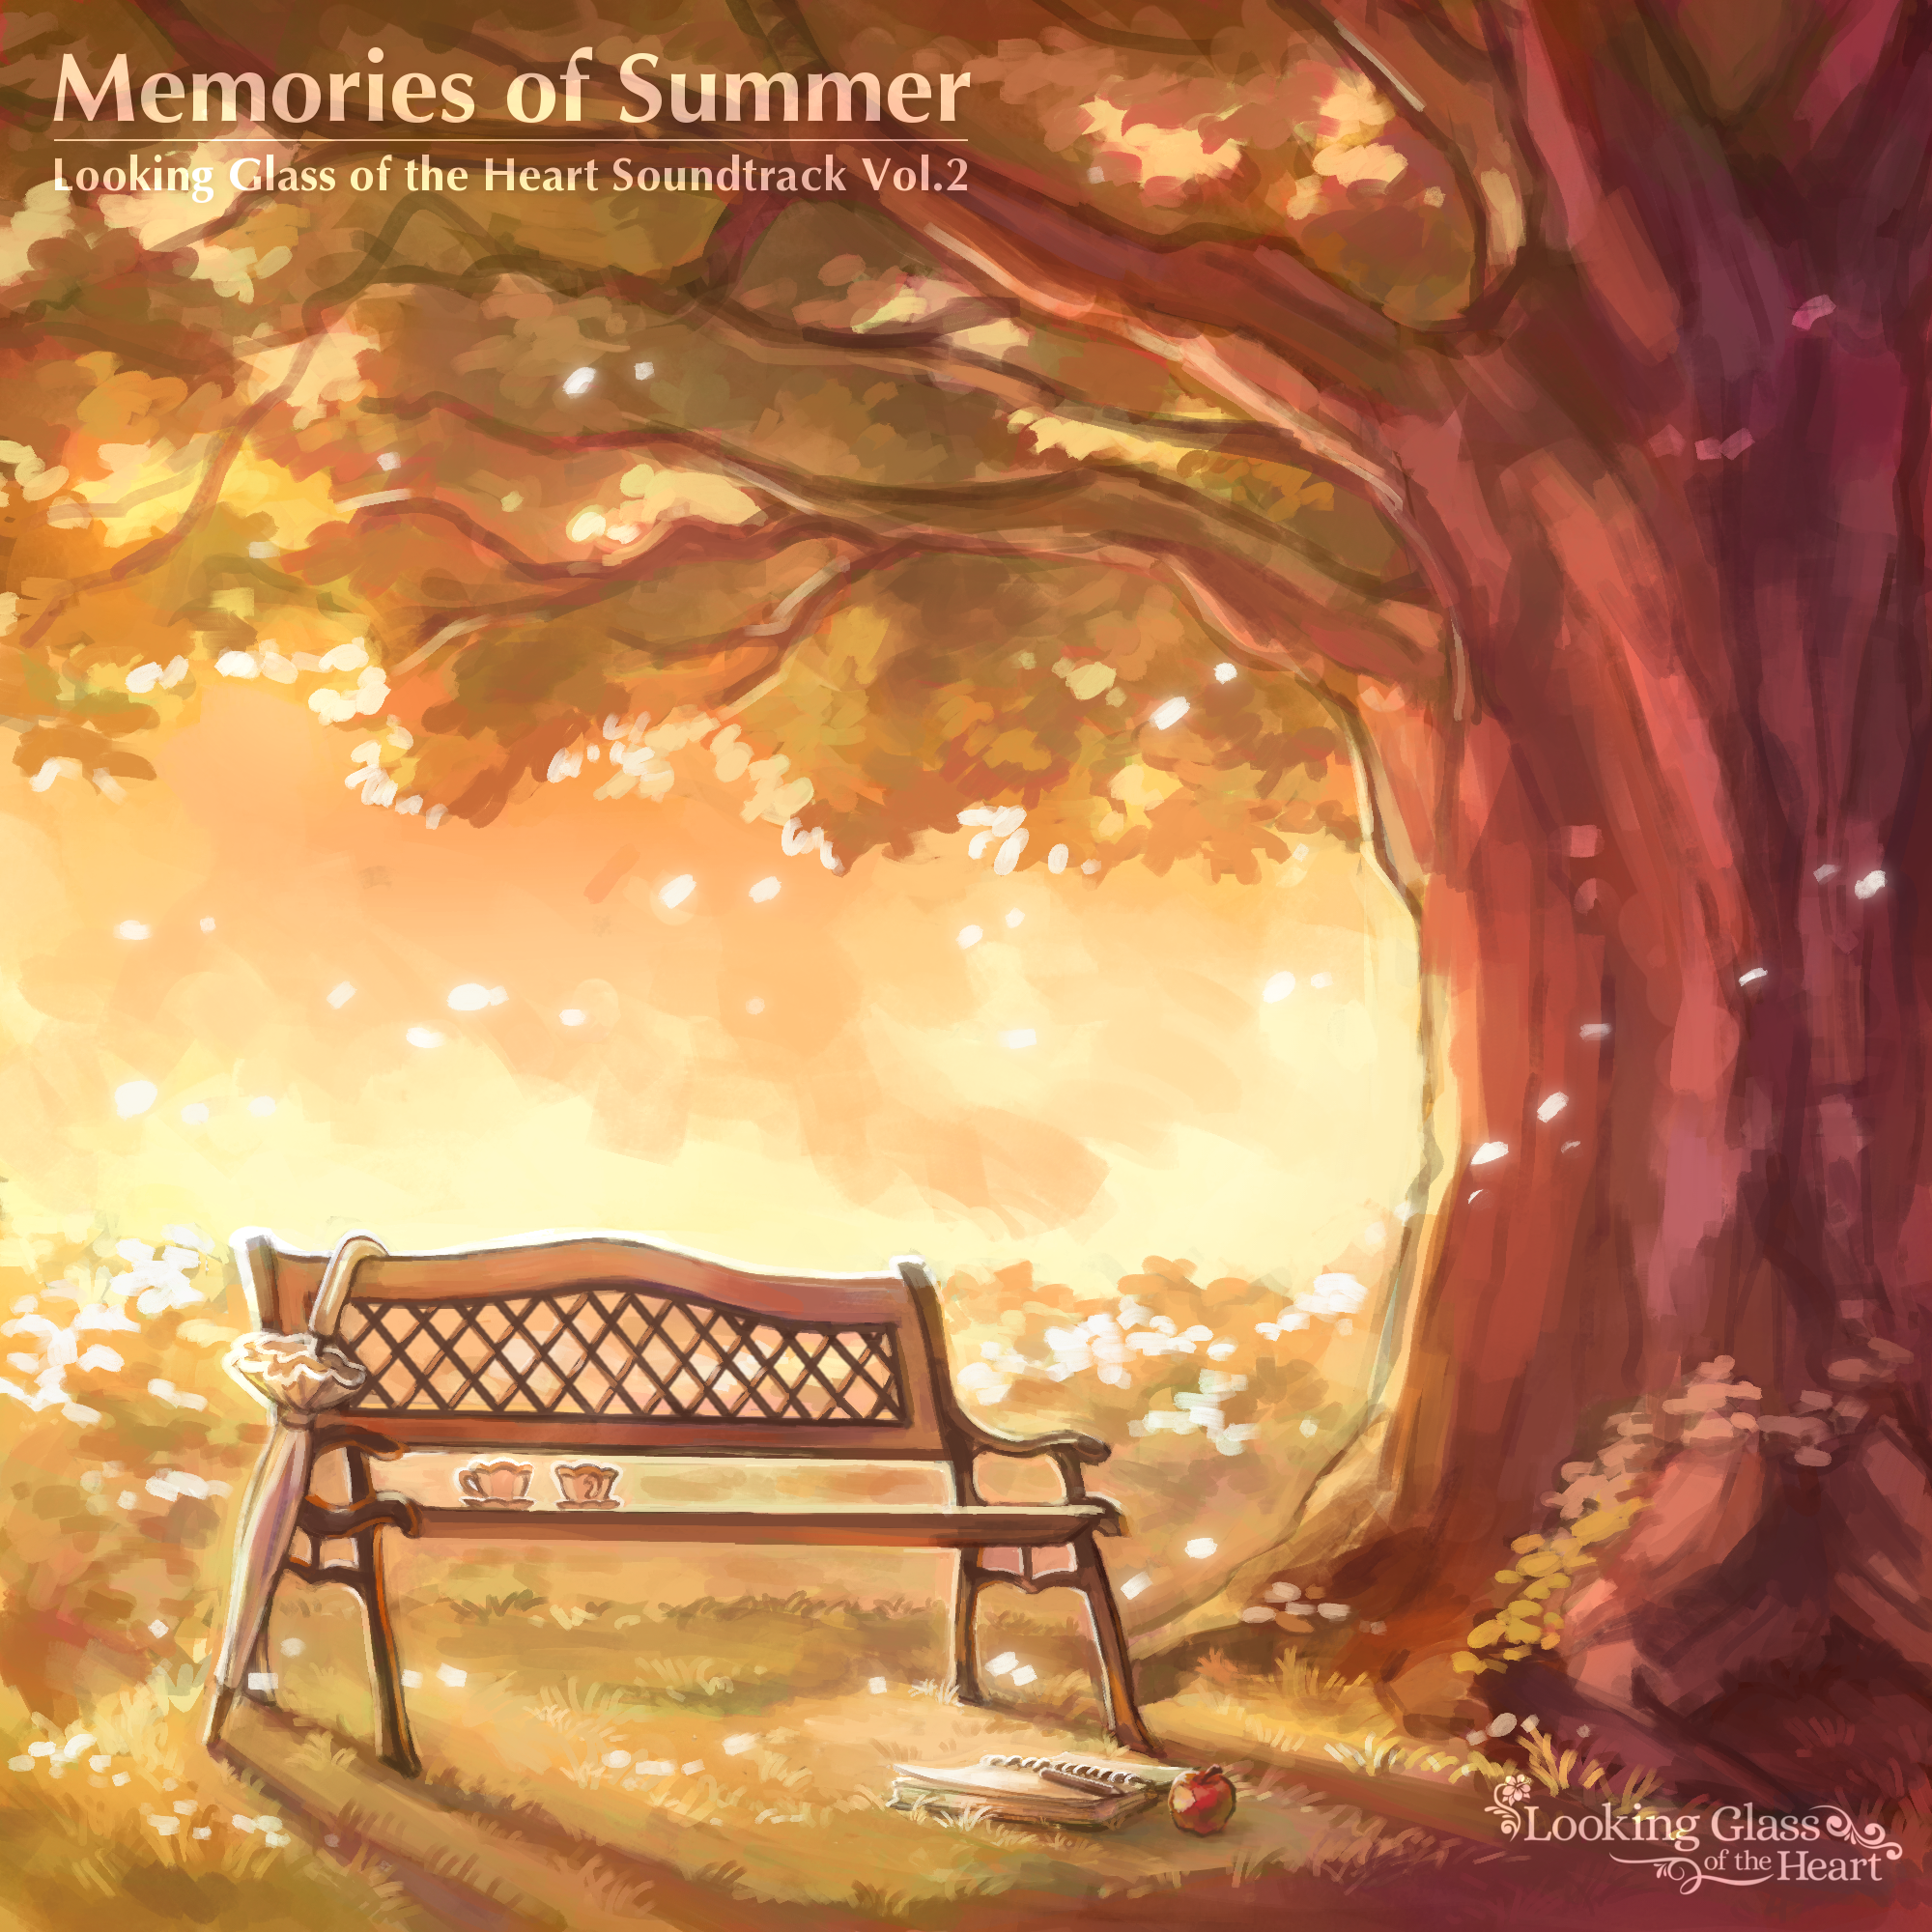 memories of summer album artwork v2.png